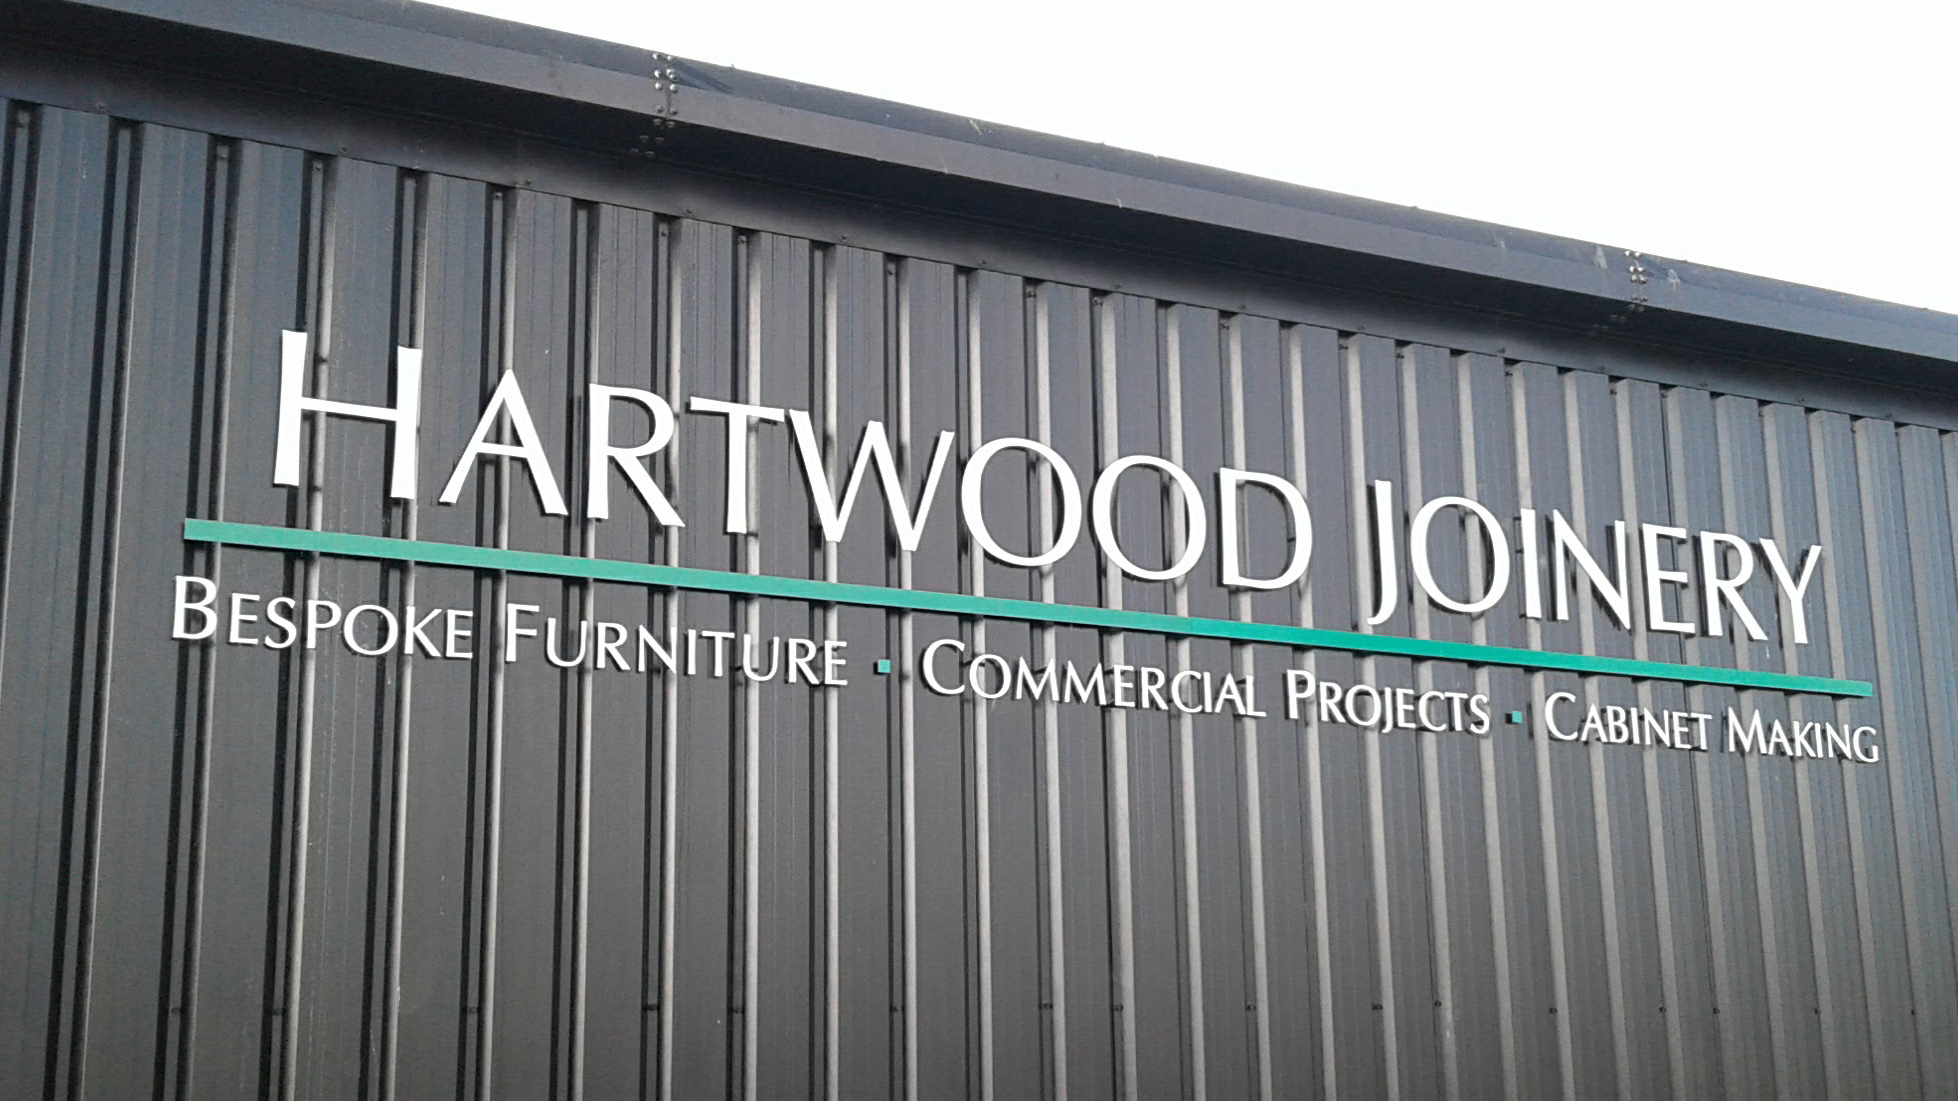 Hartwood Joinery